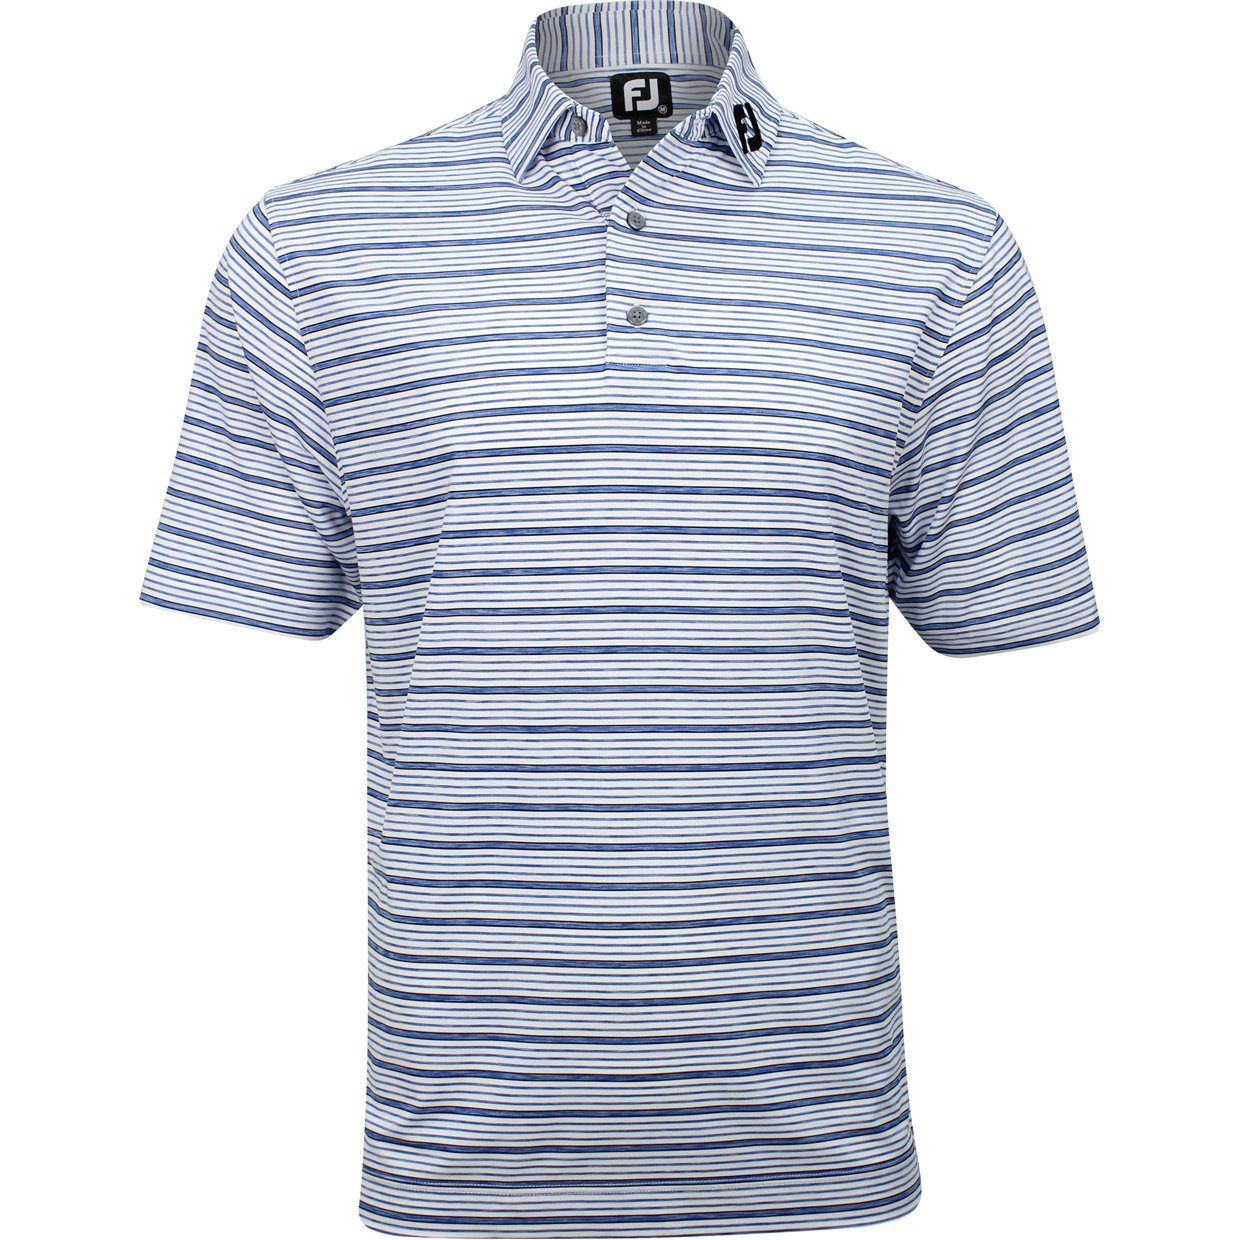 767fb2b438 FootJoy Tour Logo ProDry Performance Lisle Space Dye Stripe White M Shirt  Polo Short Sleeve